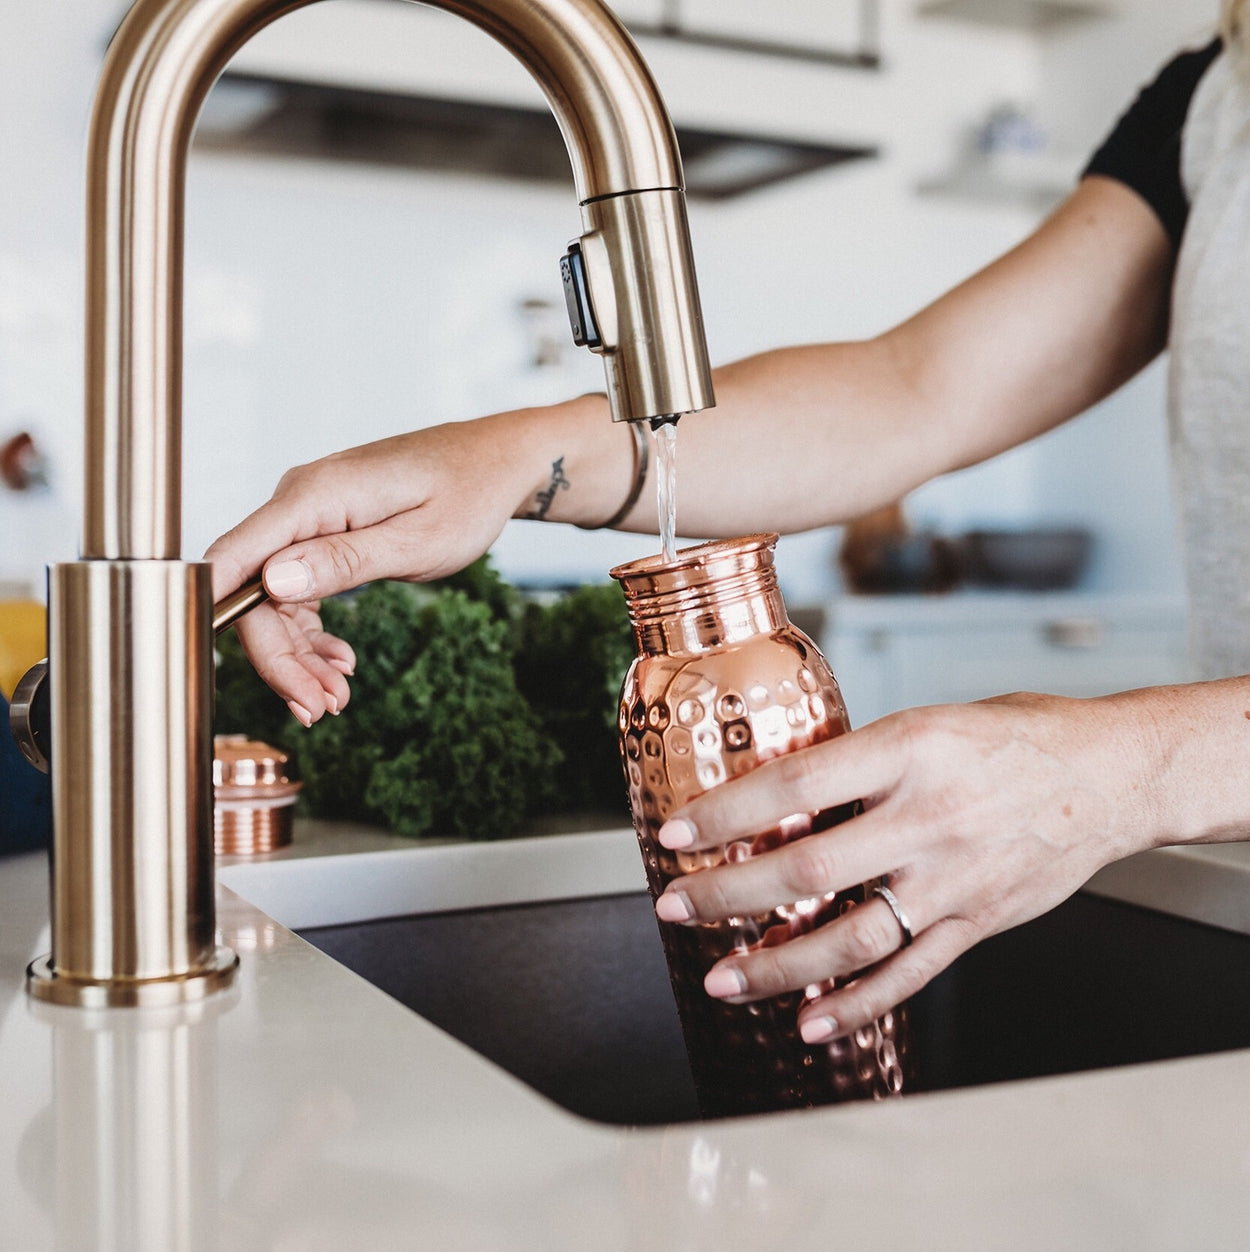 The Better Farm Co's sustinable copper water bottle is held under a kitchen sink nozzle, the perfect water bottle for an eco-friendly grocery run. Copper has many benefits. including  ayurvedic healing, increasing immunity, aiding in gut health, increasing metabolism, providing arthritic support and improving digestion.